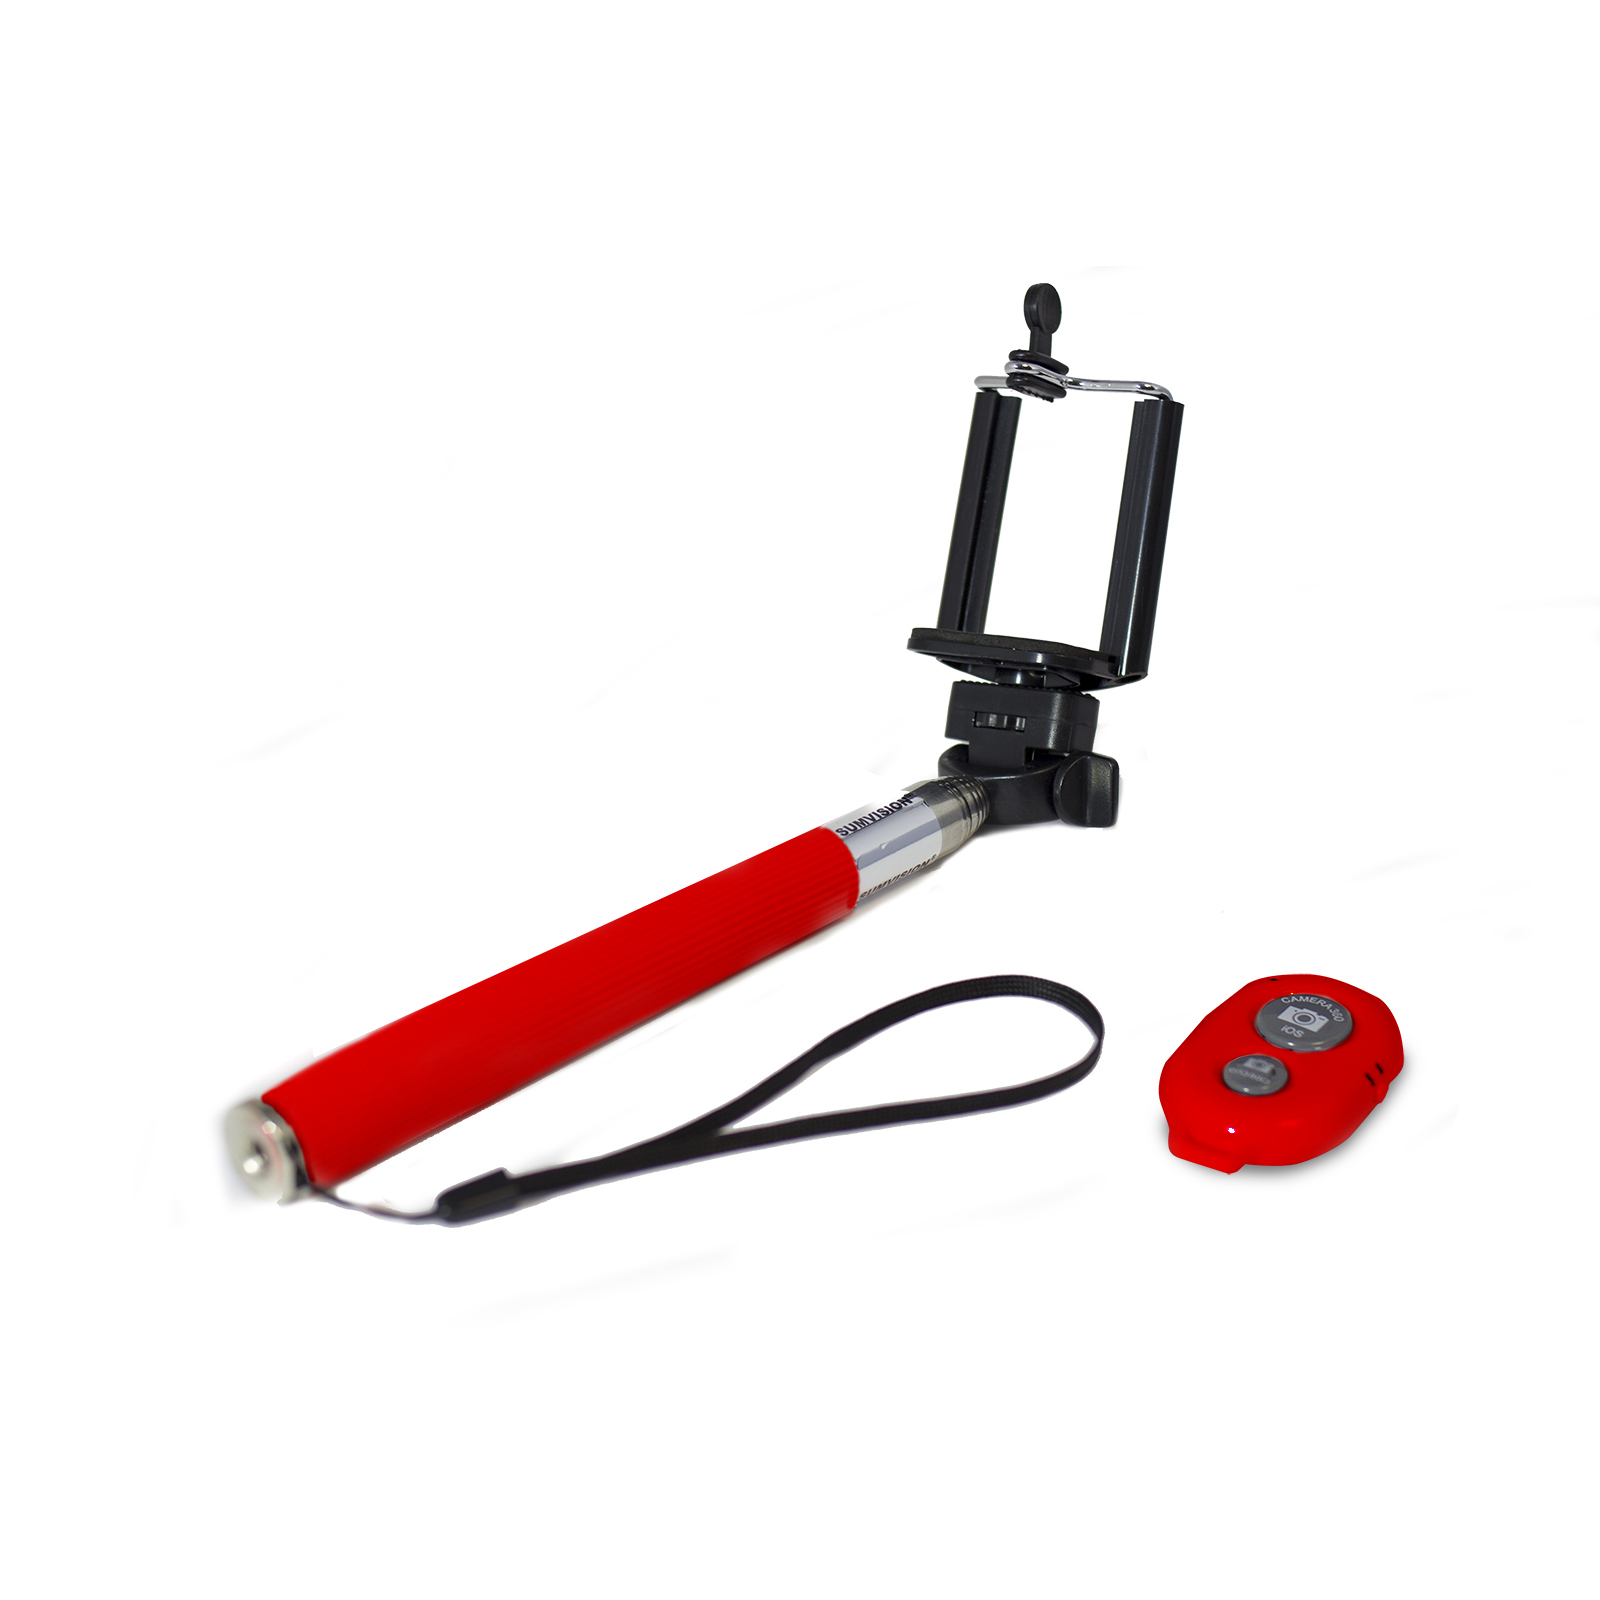 sumvision red selfie monopod with remote mt components ltd. Black Bedroom Furniture Sets. Home Design Ideas